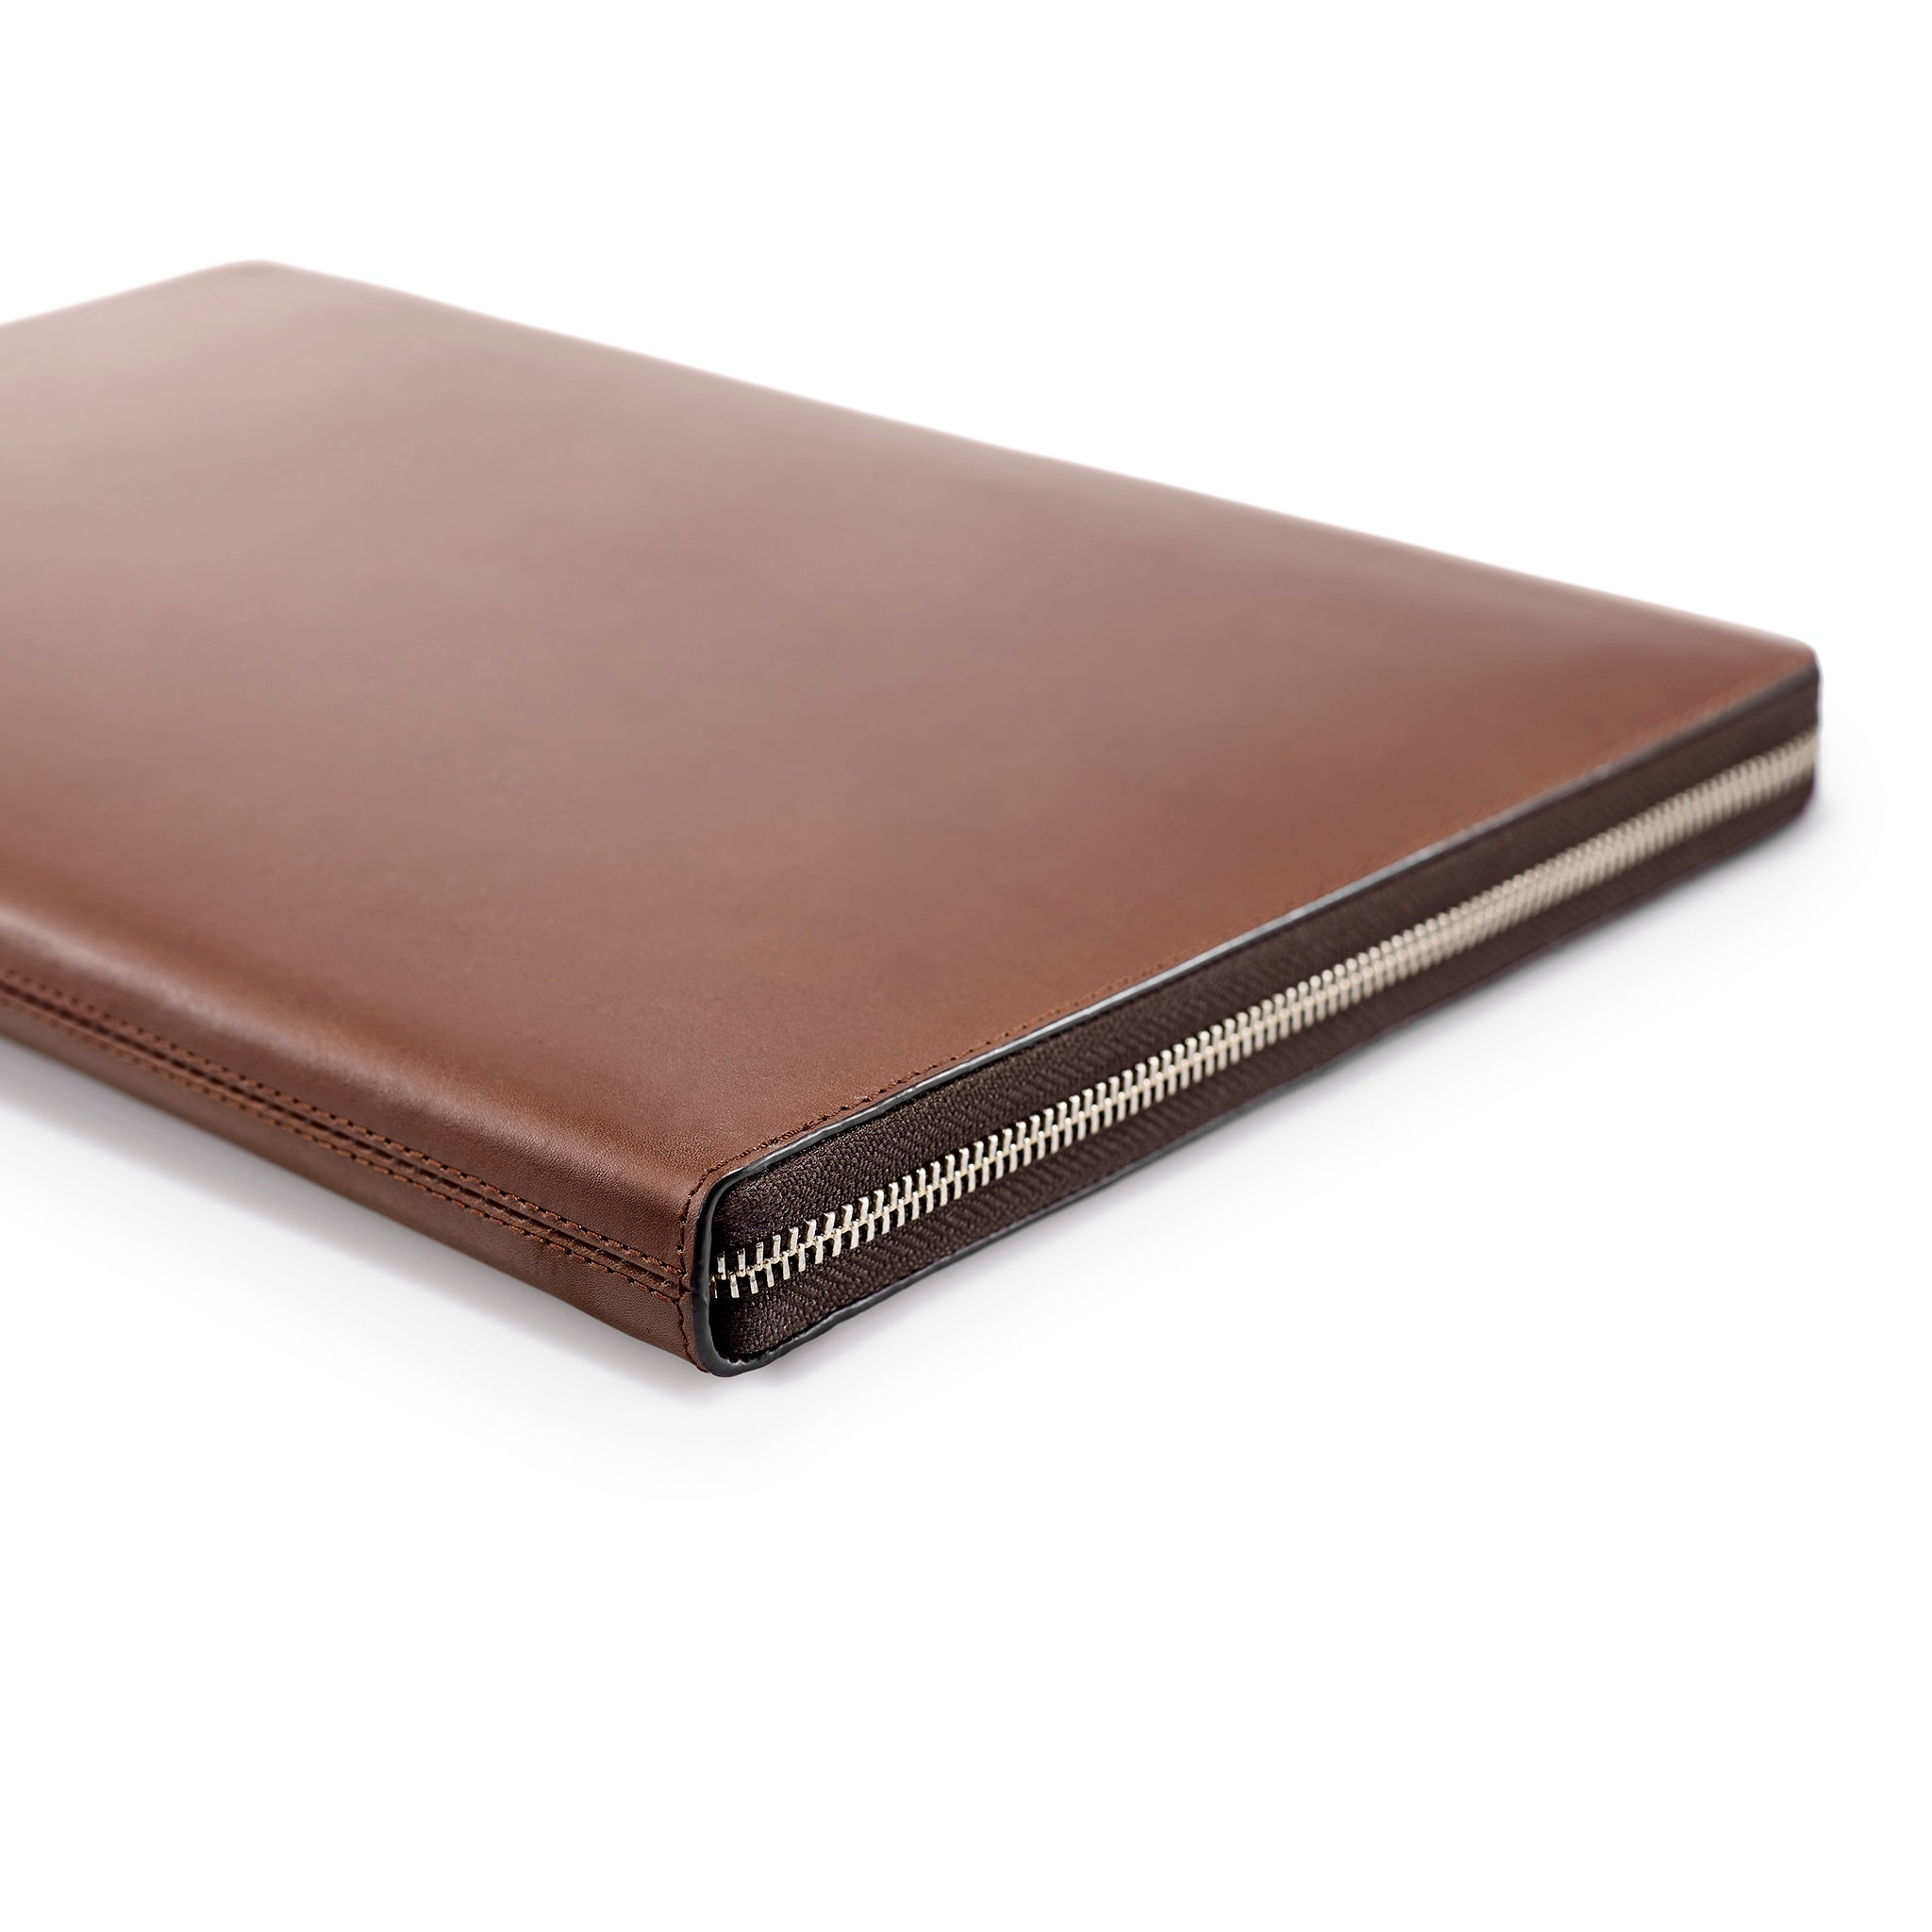 "LAPTOP PORTFOLIO 13"" BROWN NATURAL BEIGE"